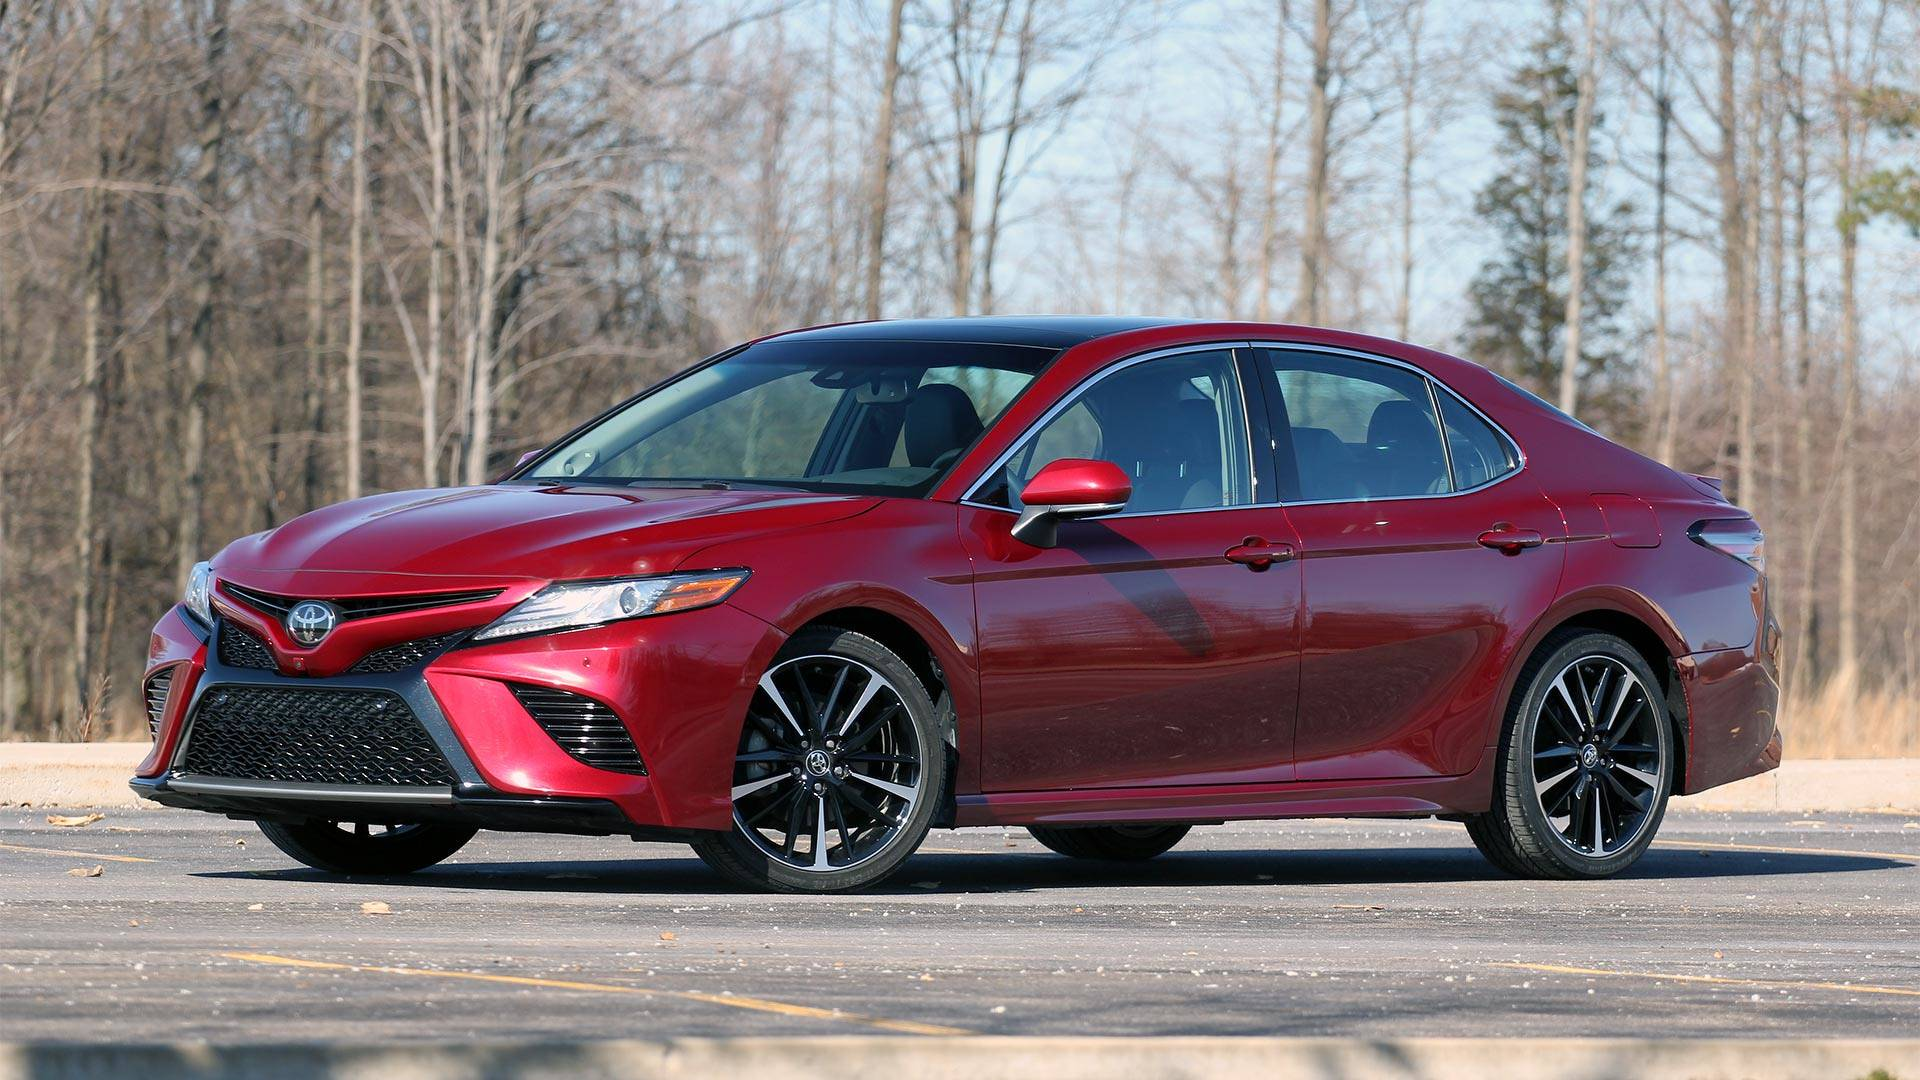 all new camry type v brand 2016 price 2018 toyota xse review getting better the time